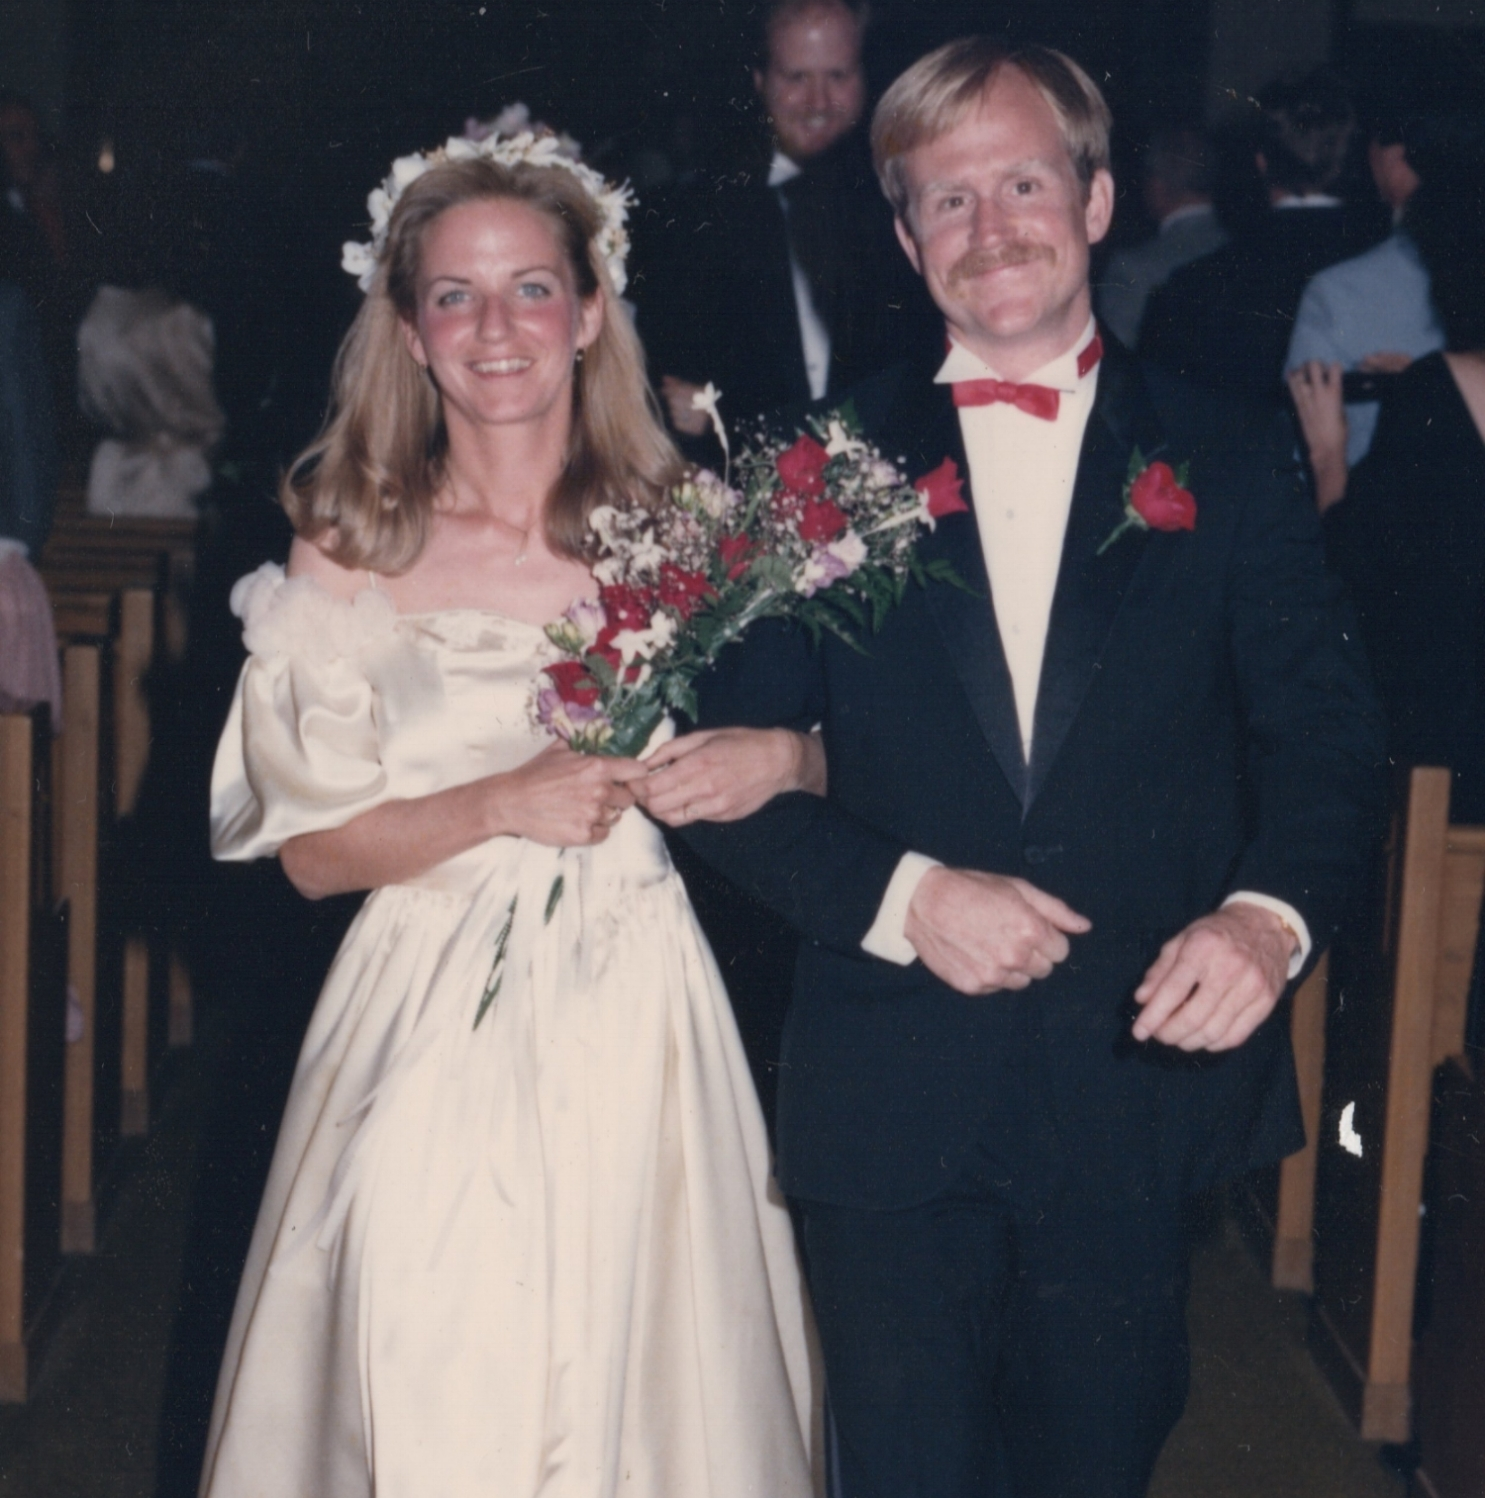 - Here are Chelsea's parents Jean and Walter on their wedding day in 1986.After two weddings, the dress was done. That and the fact that Chelsea was too tall for it.(And not being Chelsea's style!)So I had the nerve to suggest I cut up the dress and dye it to make ribbons for Chelsea's wedding. Where do I come up with this crazy stuff??